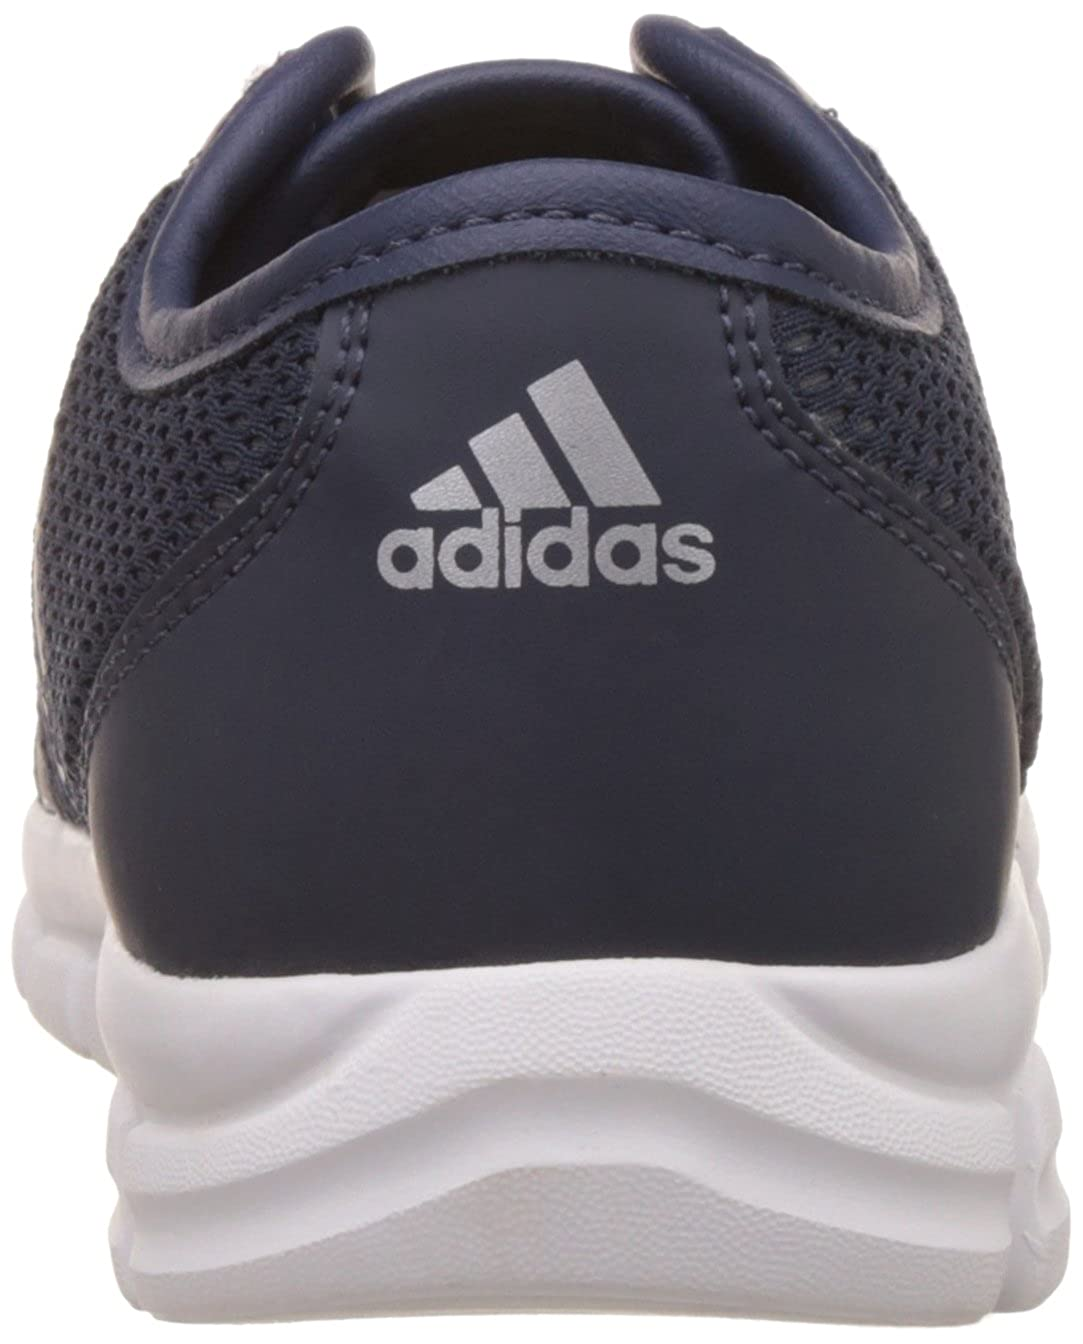 huge discount 301c4 1f464 Adidas Mens Marlin 6.0 Navy Blue Running Shoes - 9 UKIndia (43.33 EU)  Buy Online at Low Prices in India - Amazon.in